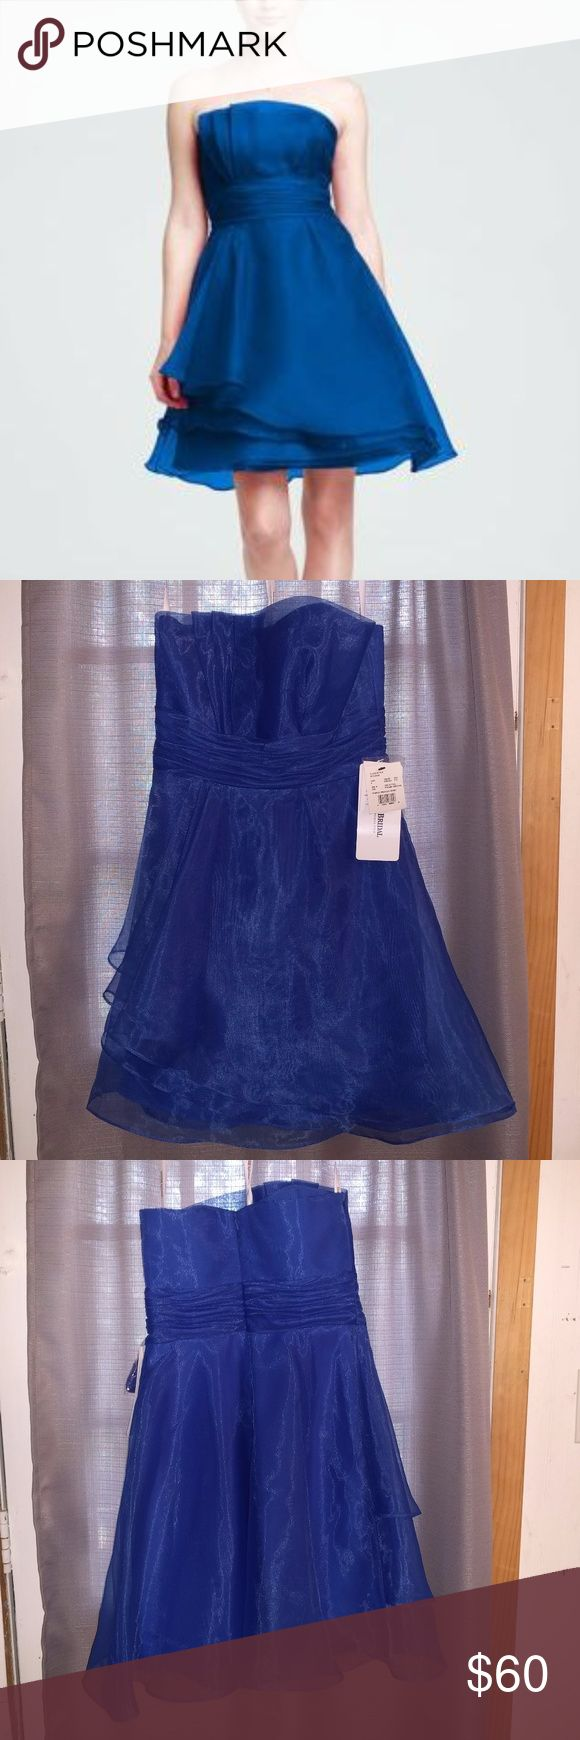 "David's Bridal Strapless Organza Dress in Horizon This dress is strapless, but it comes with a strap that can be used to make it into a halter dress.  The color is a lovely, very vibrant blue. David's Bridal calls it ""Horizon"".  These dresses have never been worn & the tags are still on.  I looked over these extremely closely, checking for flaws of any kind, but I didn't find anything at all.  I bought these as bridesmaid dresses, but they would also be great for a school dance or other…"